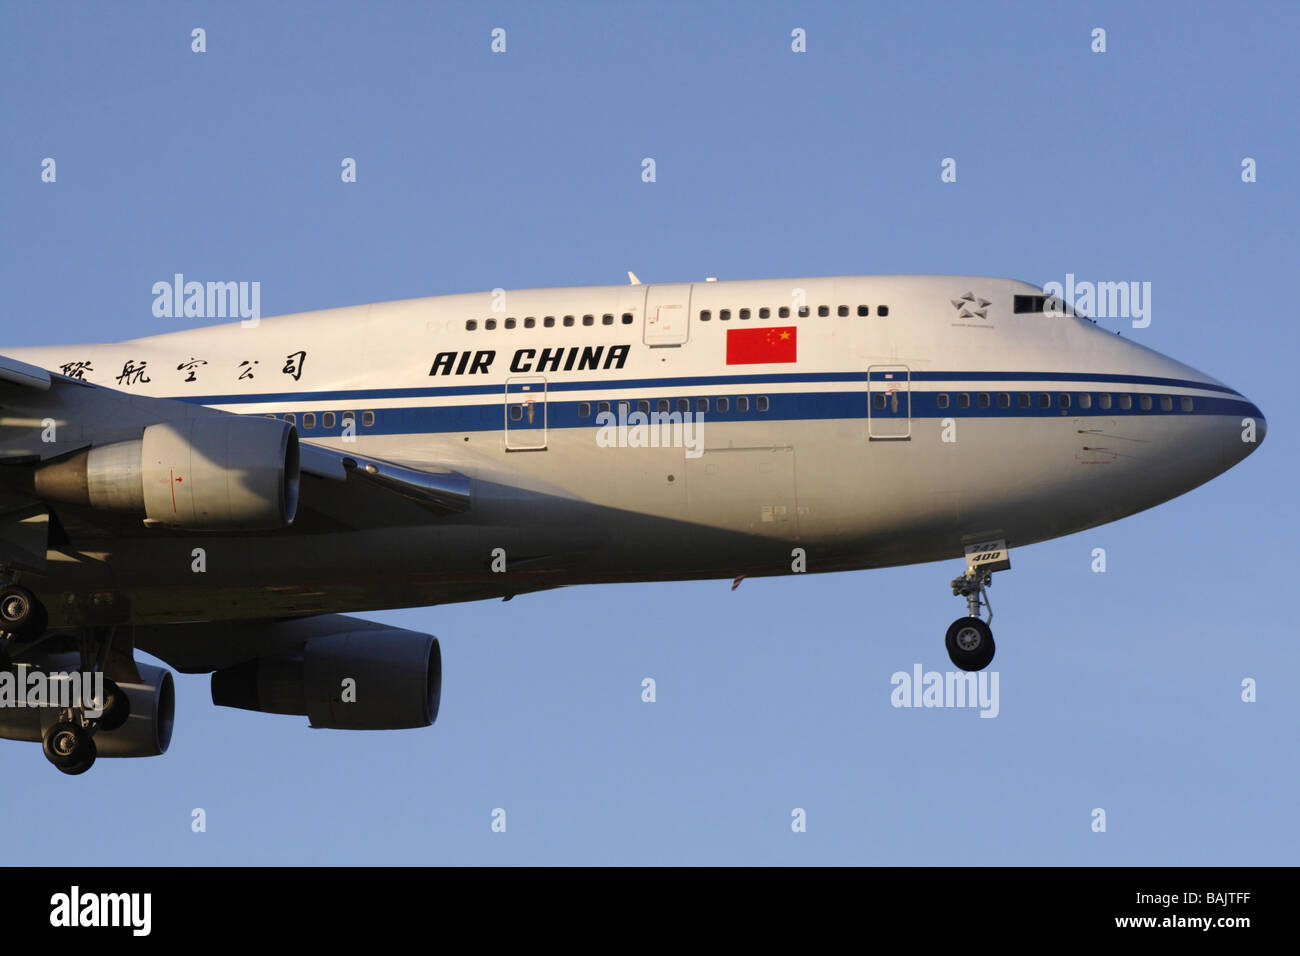 Air China Boeing 747-400 jumbo jet plane arriving at dawn. Close up view. - Stock Image